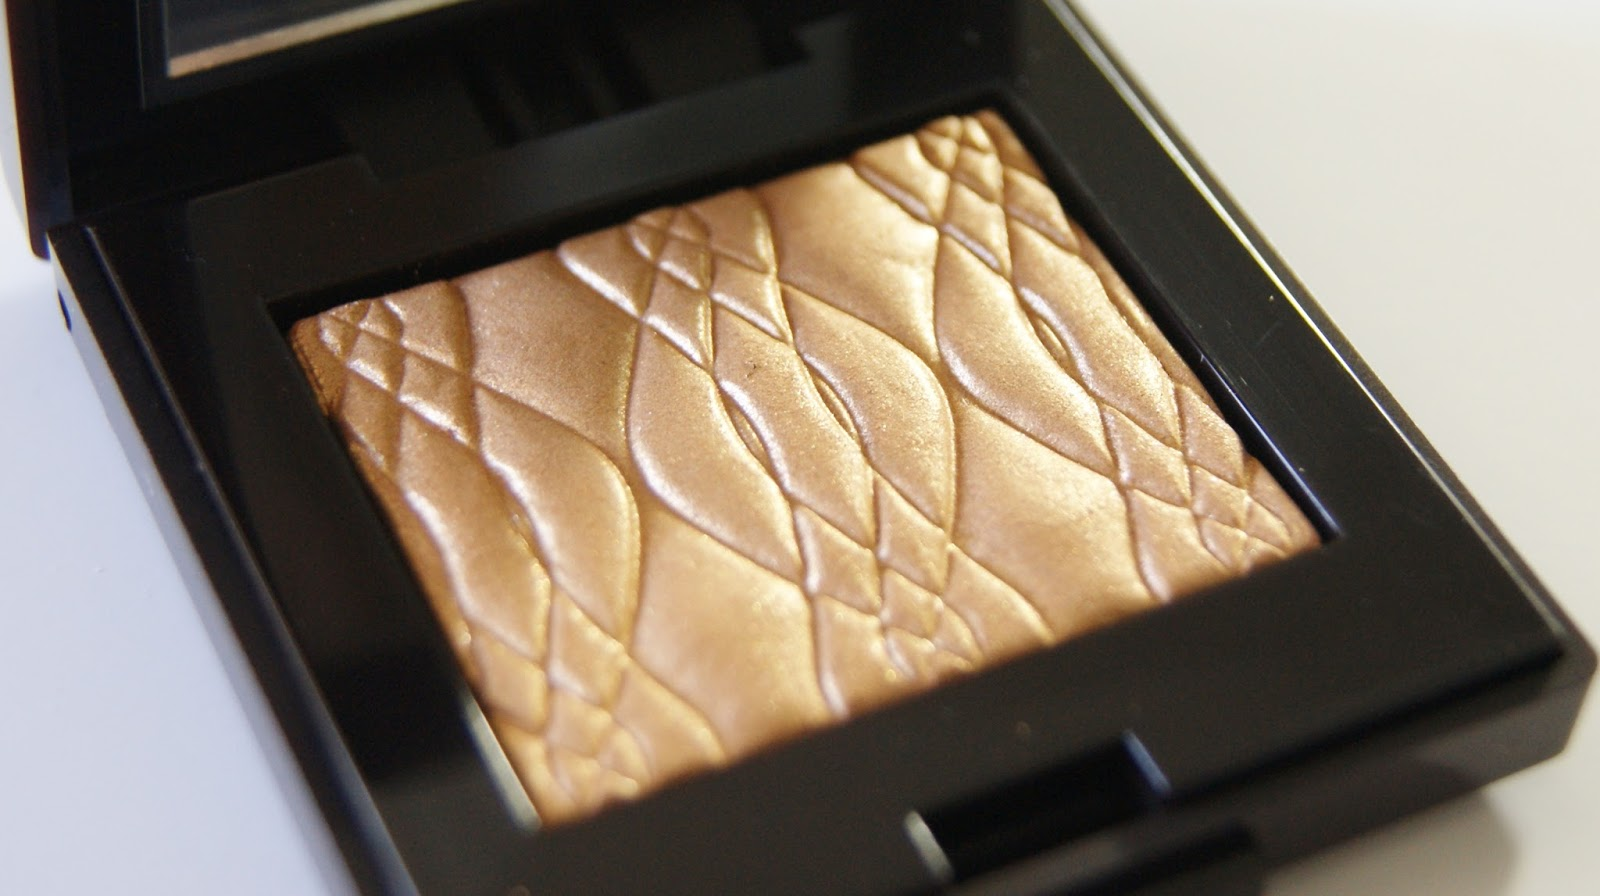 Laura Mercier Illuminating Eye Colour in Sunglow